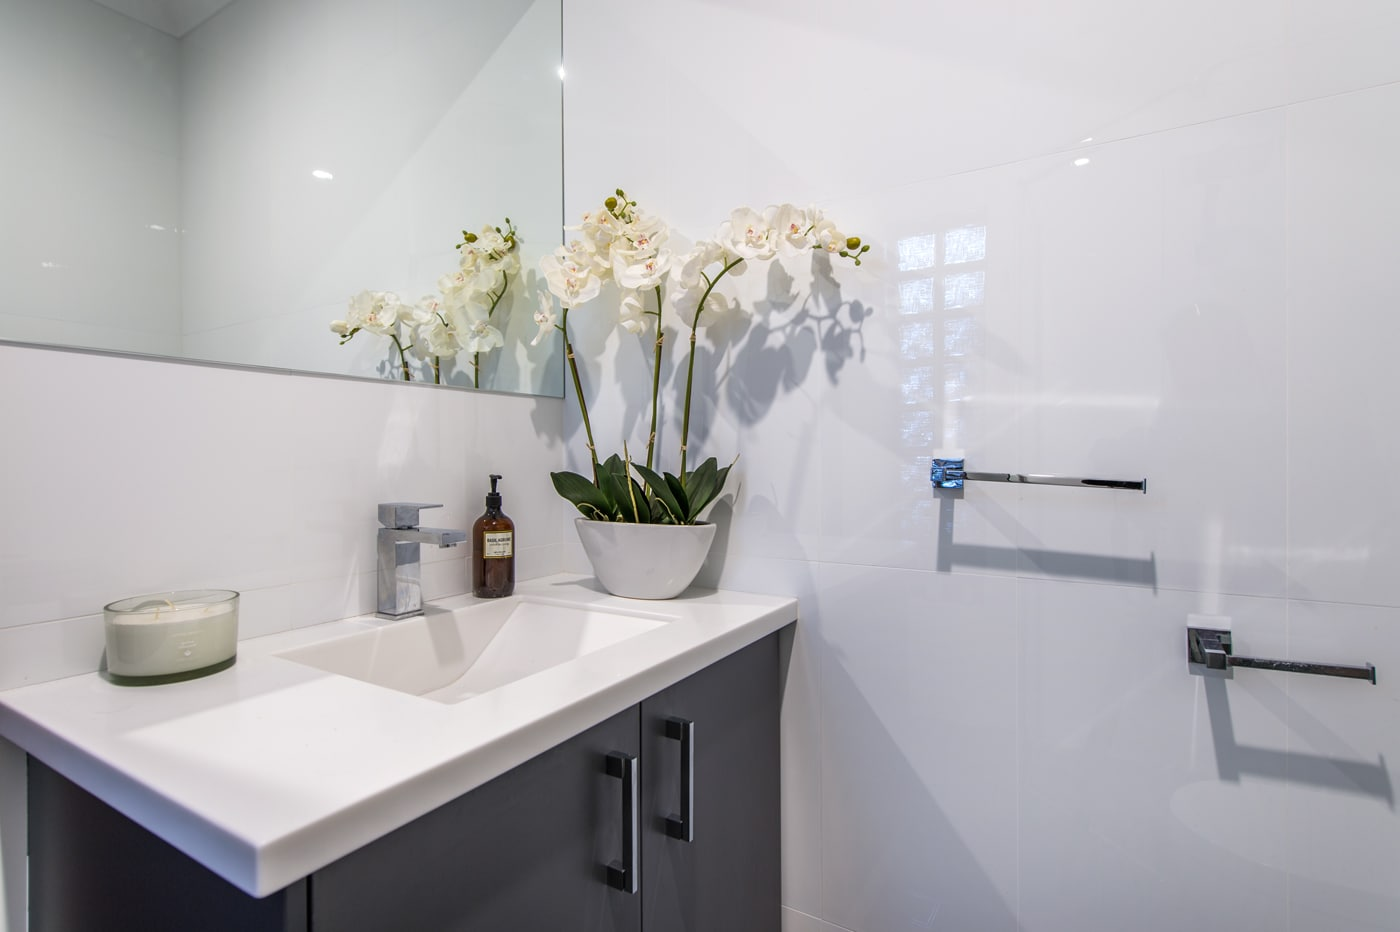 Bathroom Showrooms Joondalup veejay's - kitchen renovations & designs - joondalup